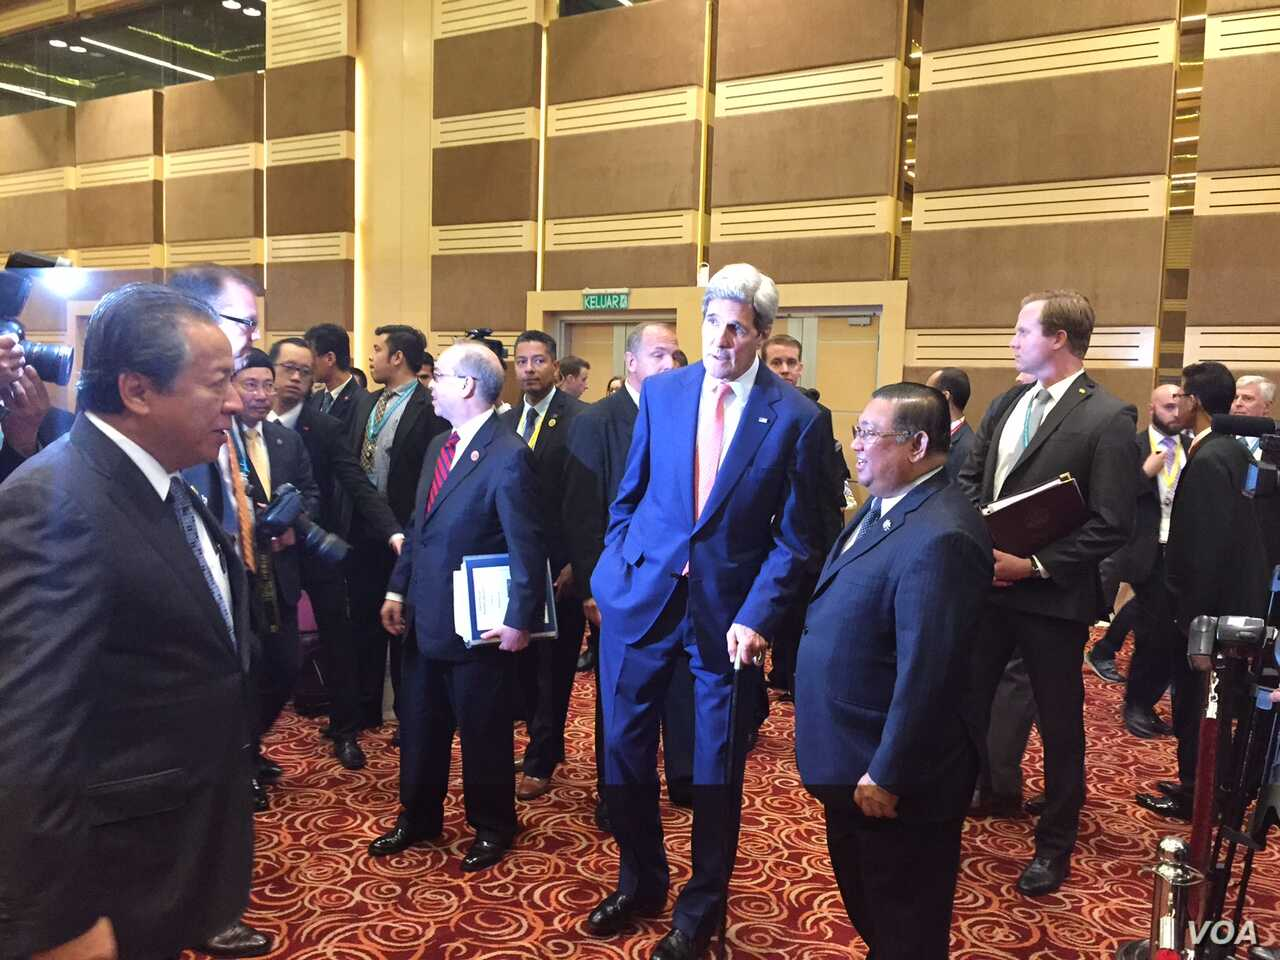 U.S. Secretary of State John Kerry answers reporter's question during a break at the ASEAN summit in Kuala Lumpur, Malaysia, Aug. 5, 2015.  (Photo: Pam Dockins / VOA)